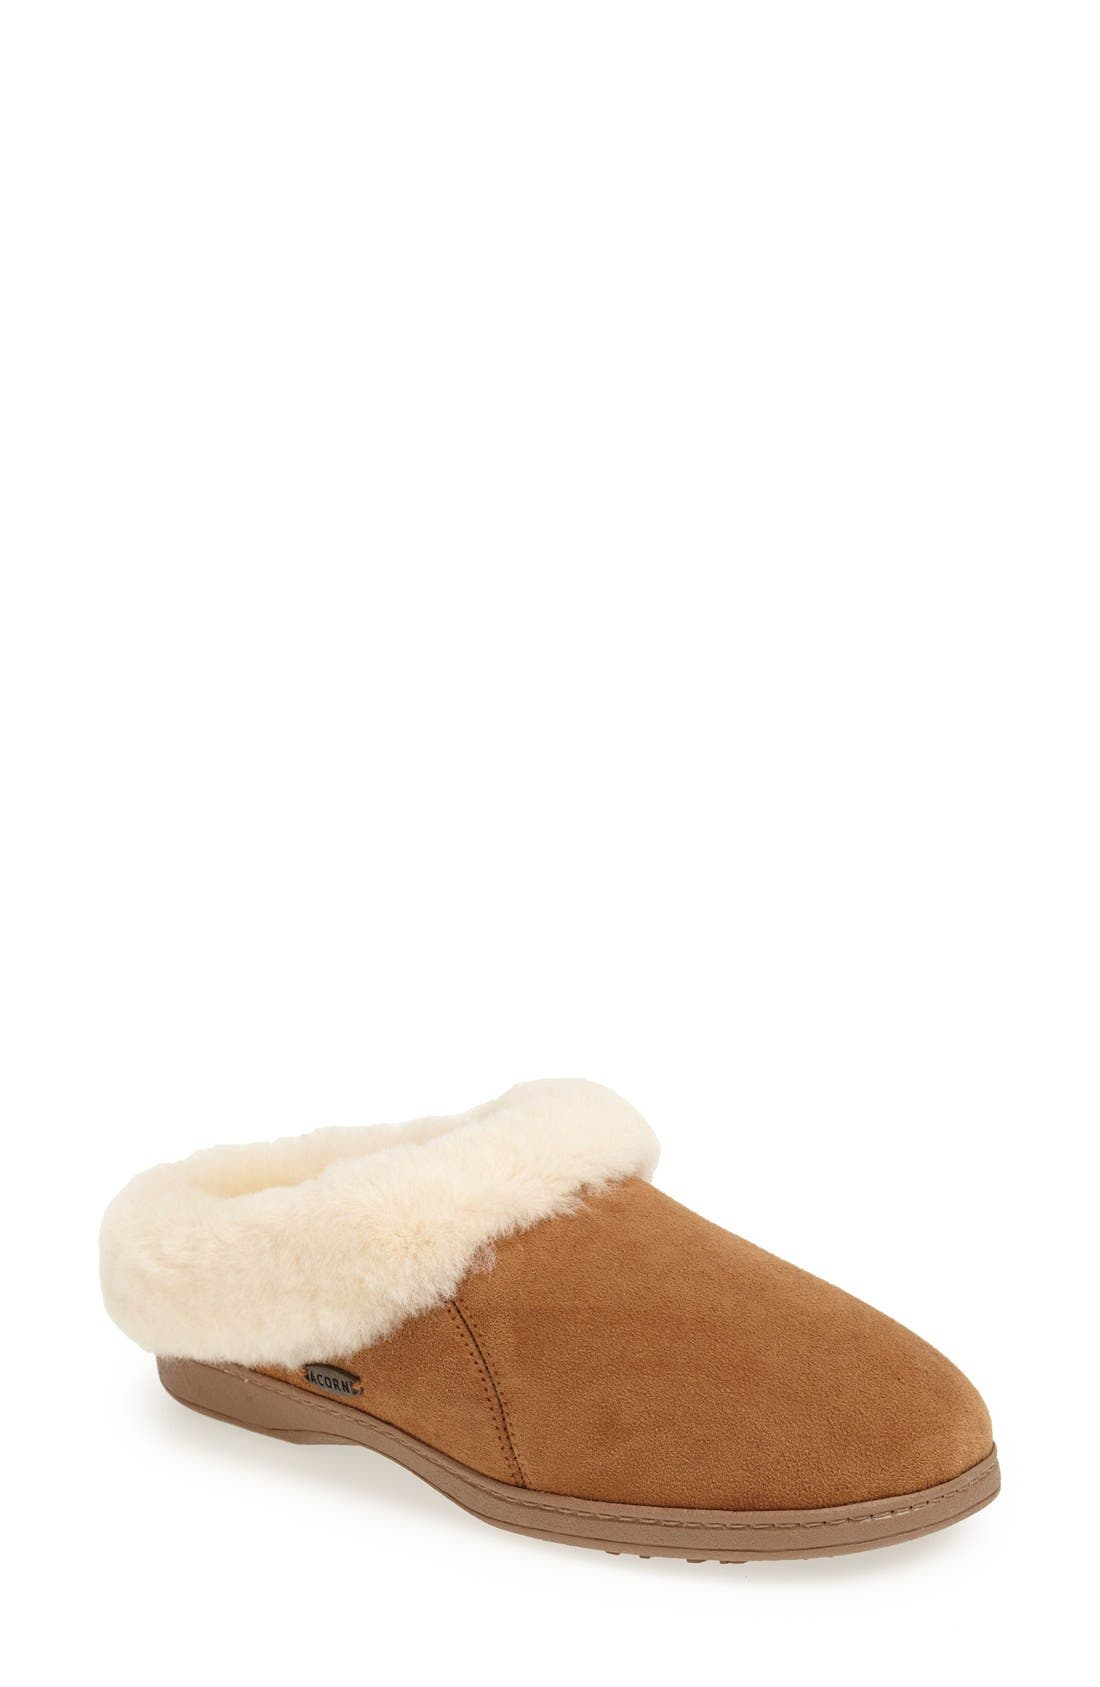 Acorn 'Ewe Collar' Genuine Sheepskin Mule Slipper